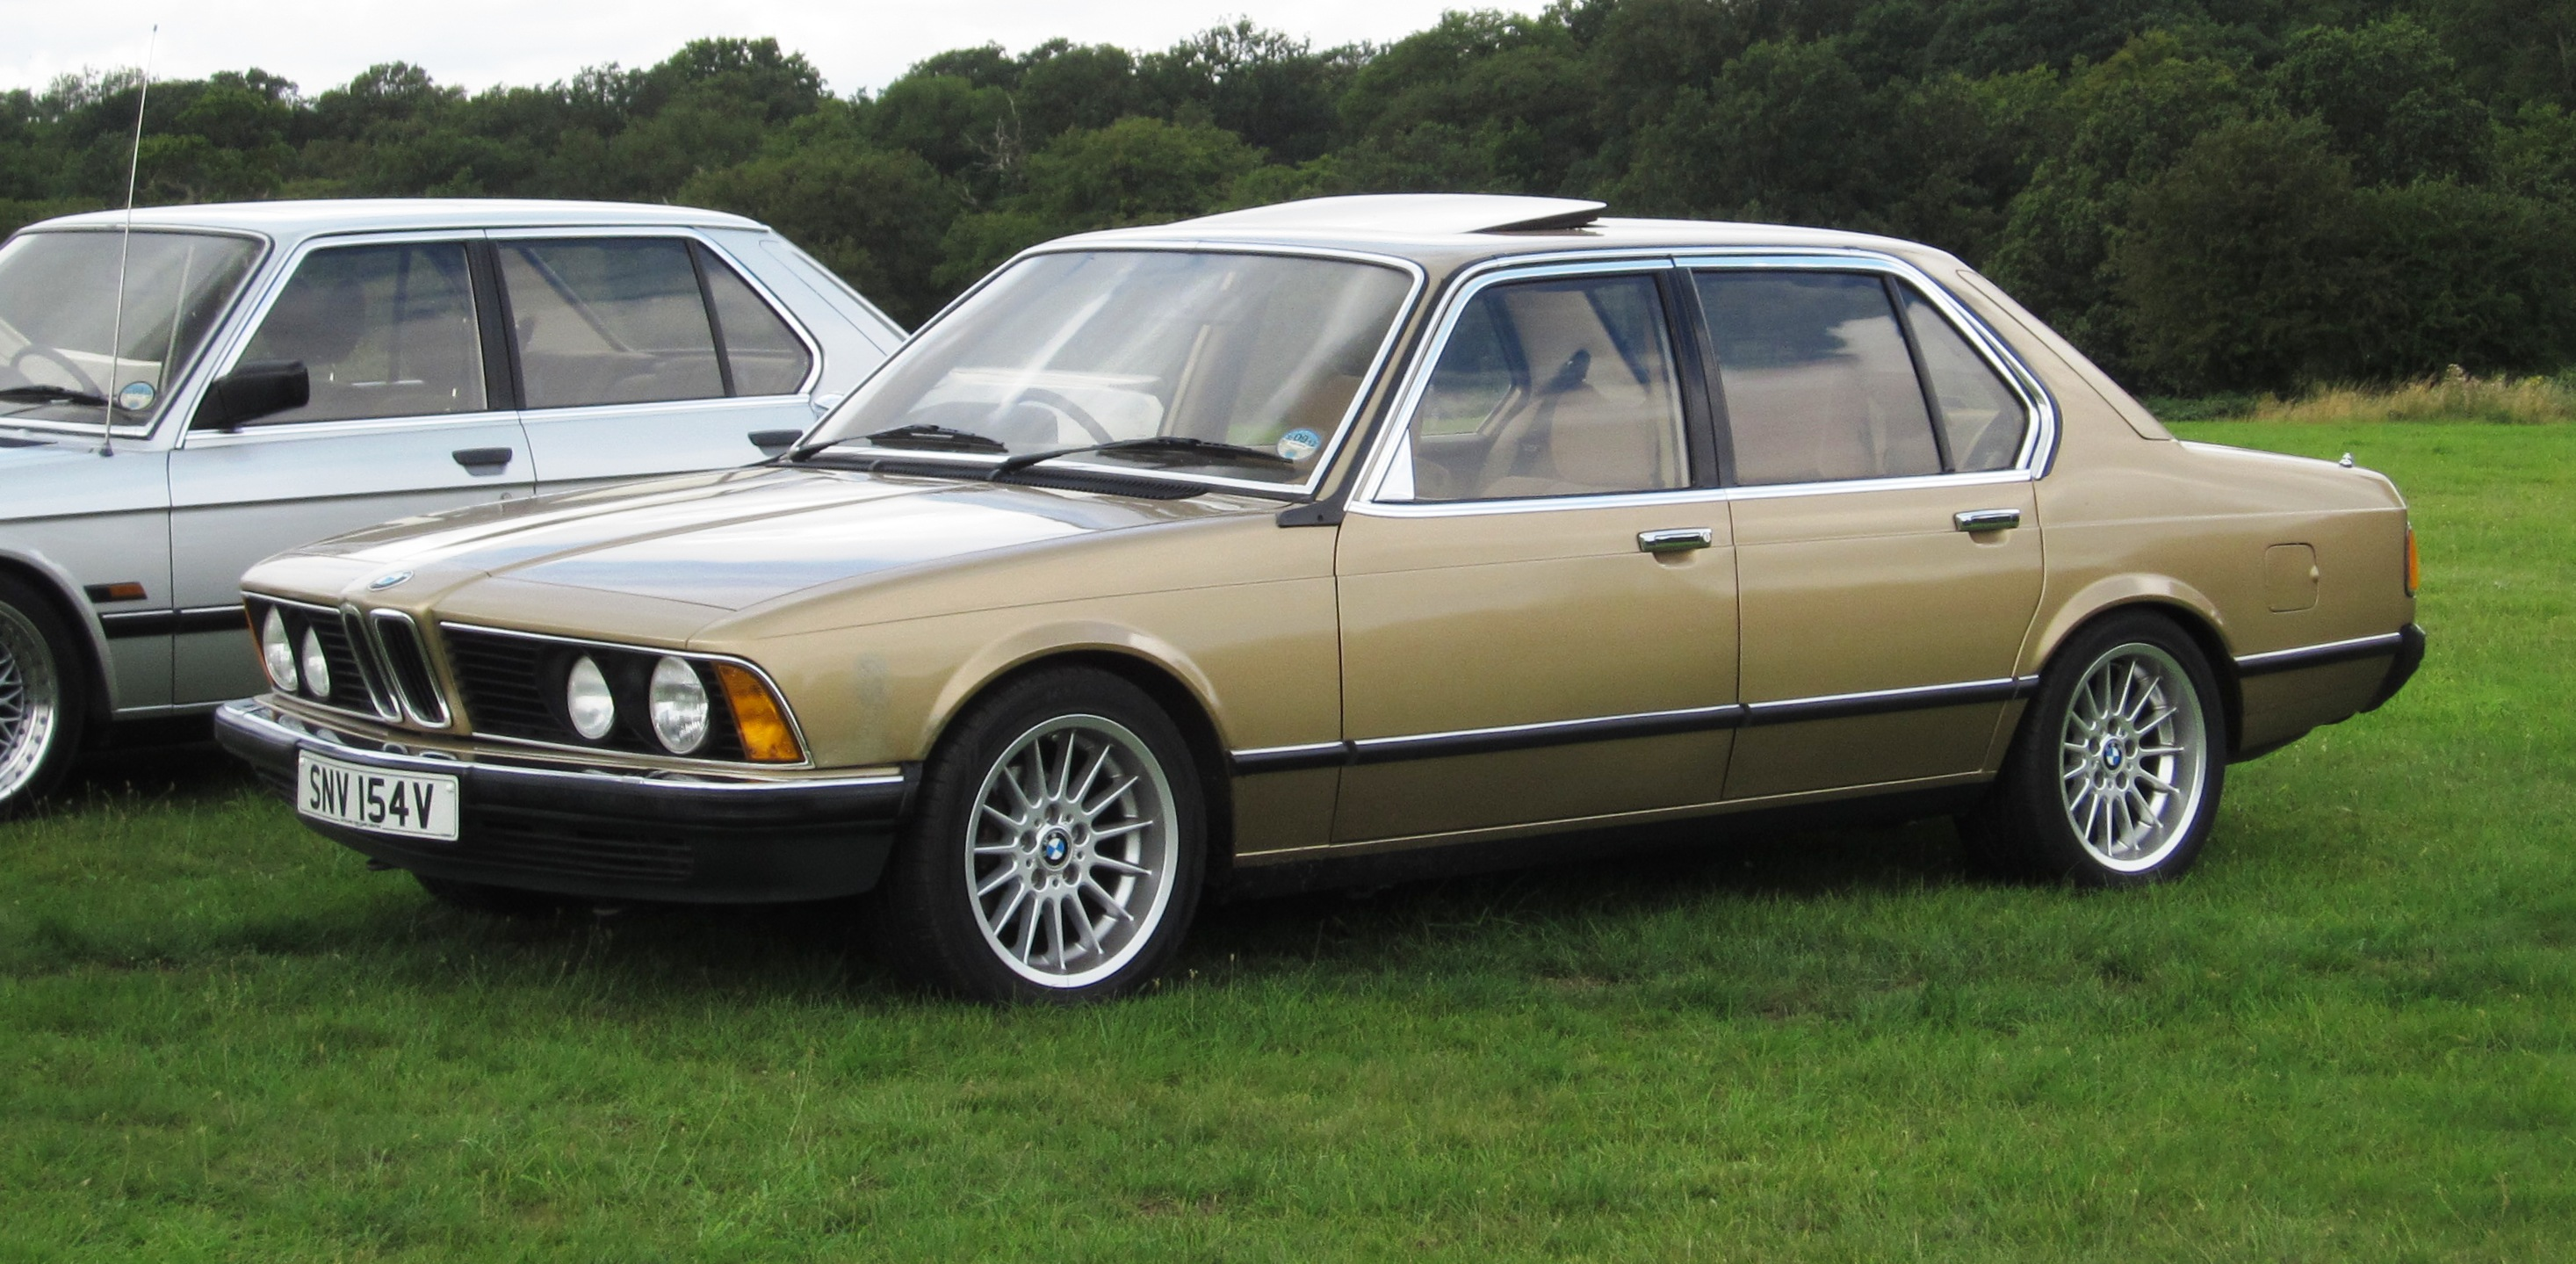 File:BMW 728 (E23) 2795cc registerd UK August 1979 photographed Knebworth  August 2012